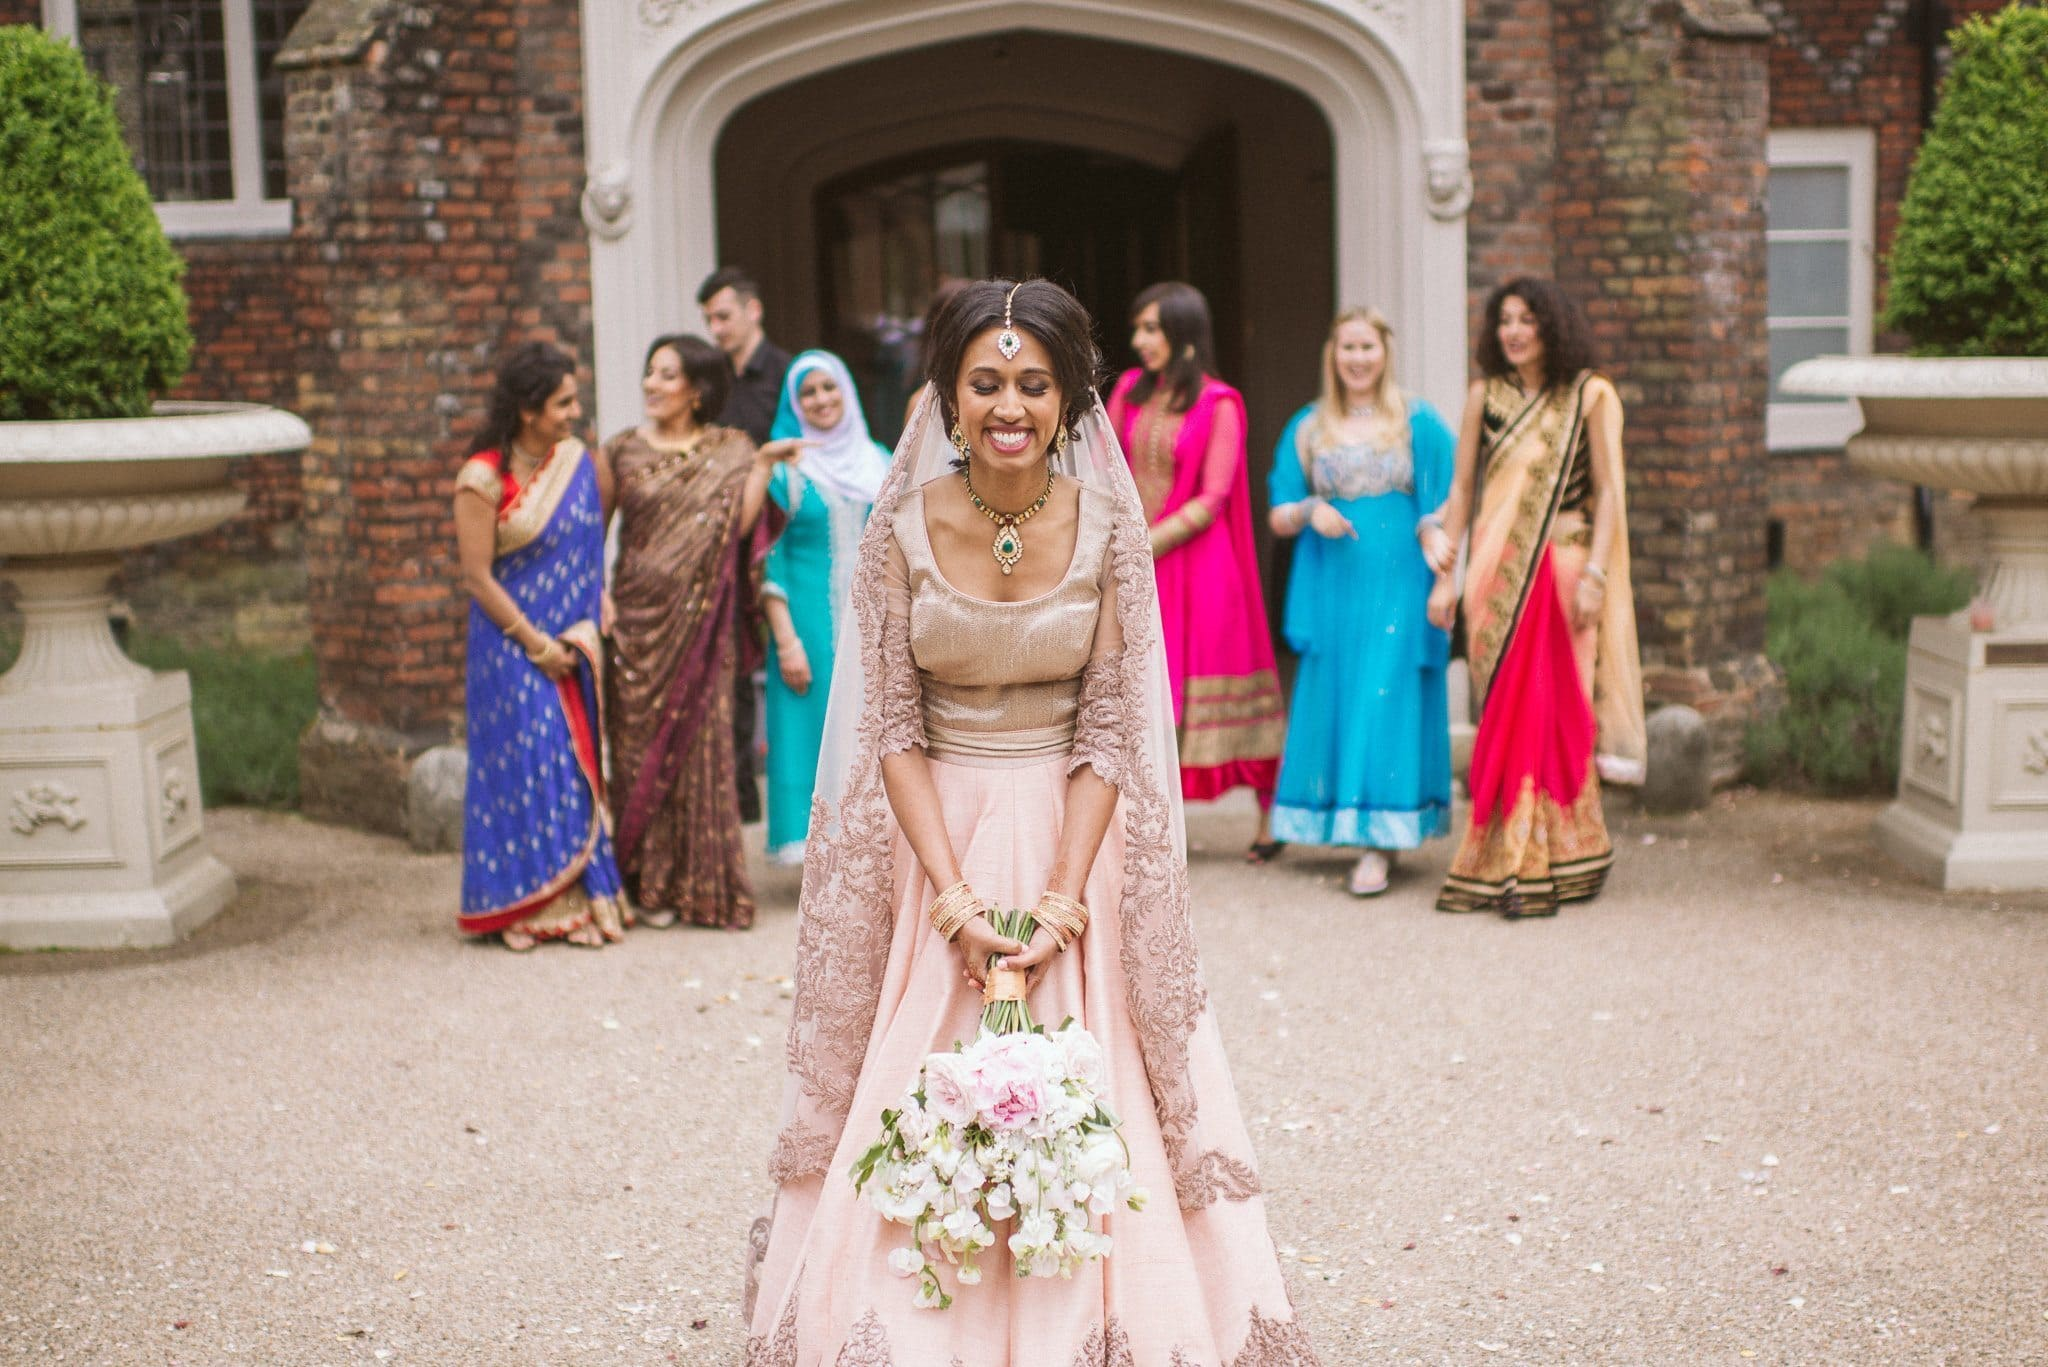 Sorayya prepares to throw her bouquet to a crowd of female guests in brightly coloured saris